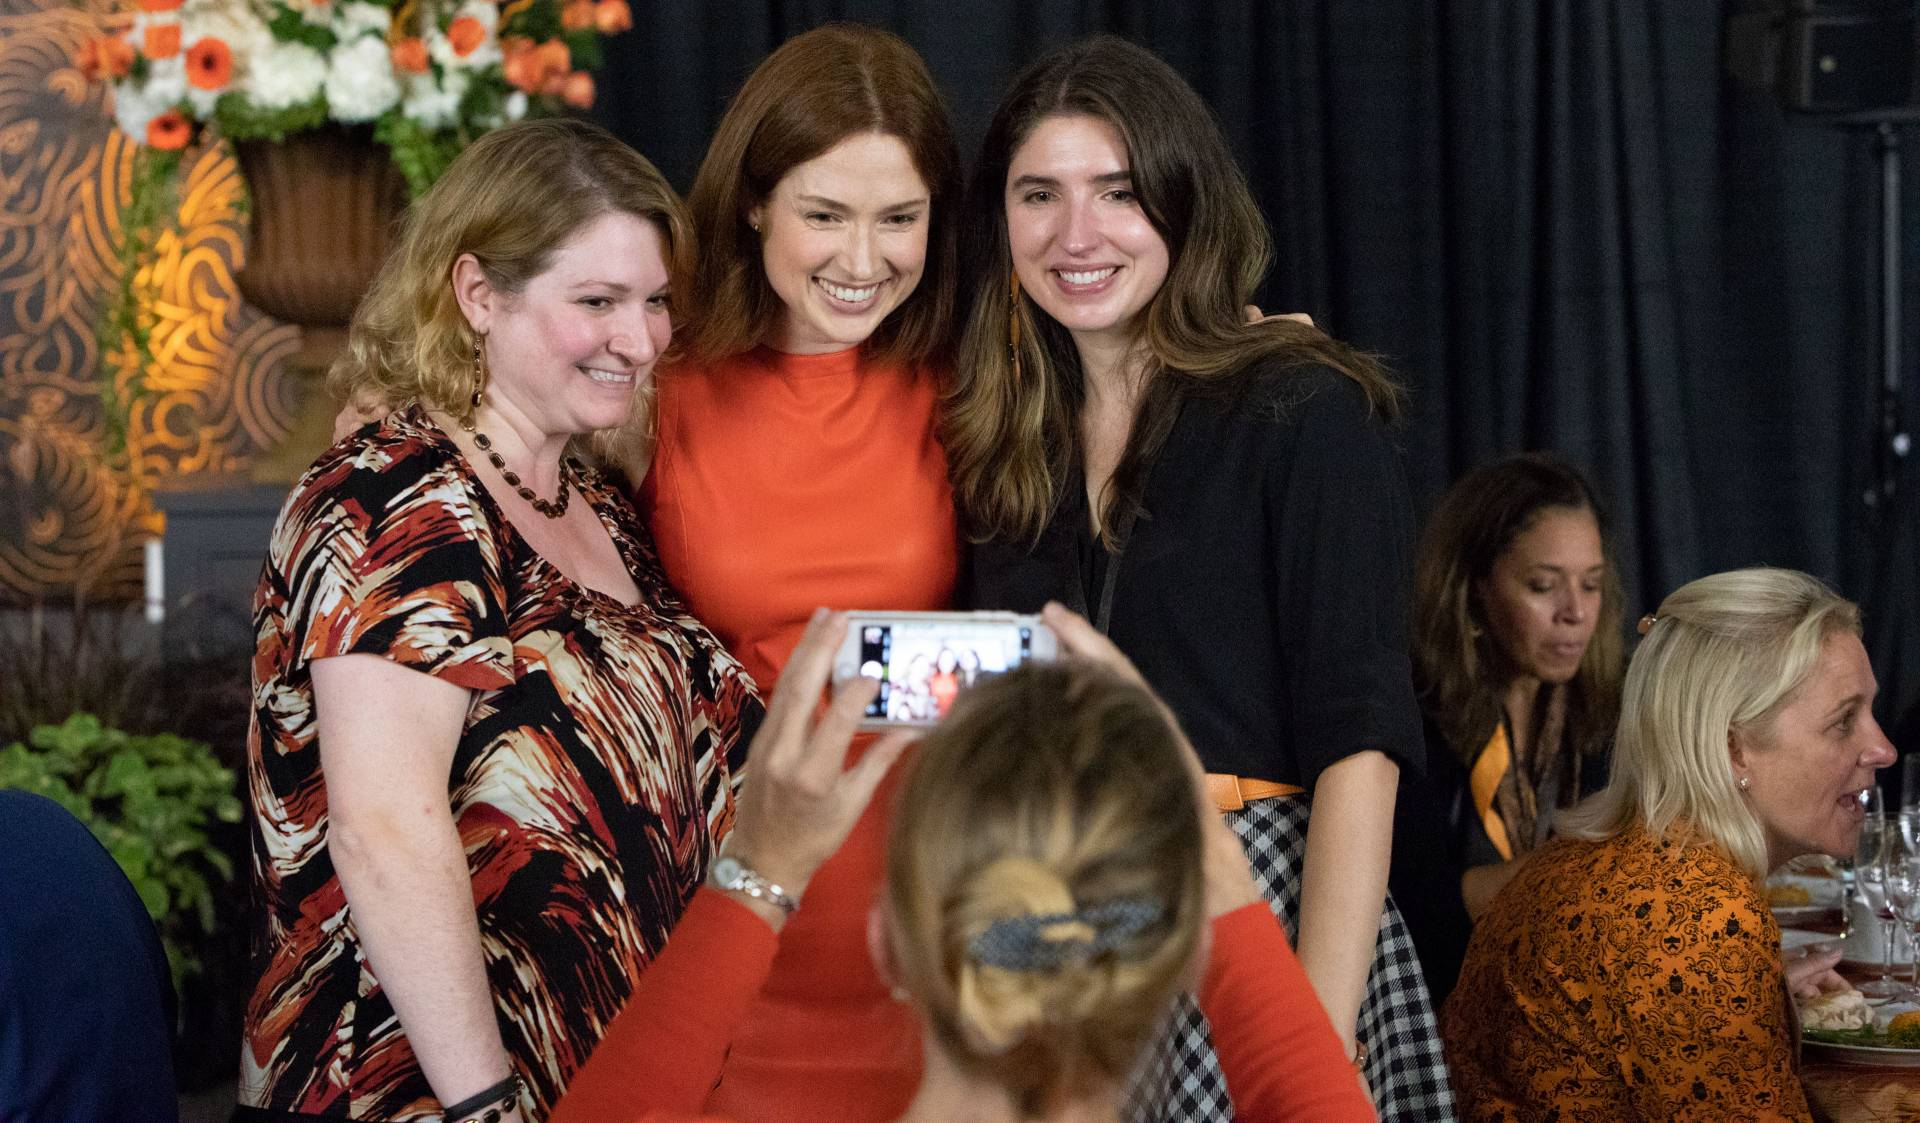 Elizabeth Greenberg , Ellie Kemper, Juliet Hernandez posing for photo